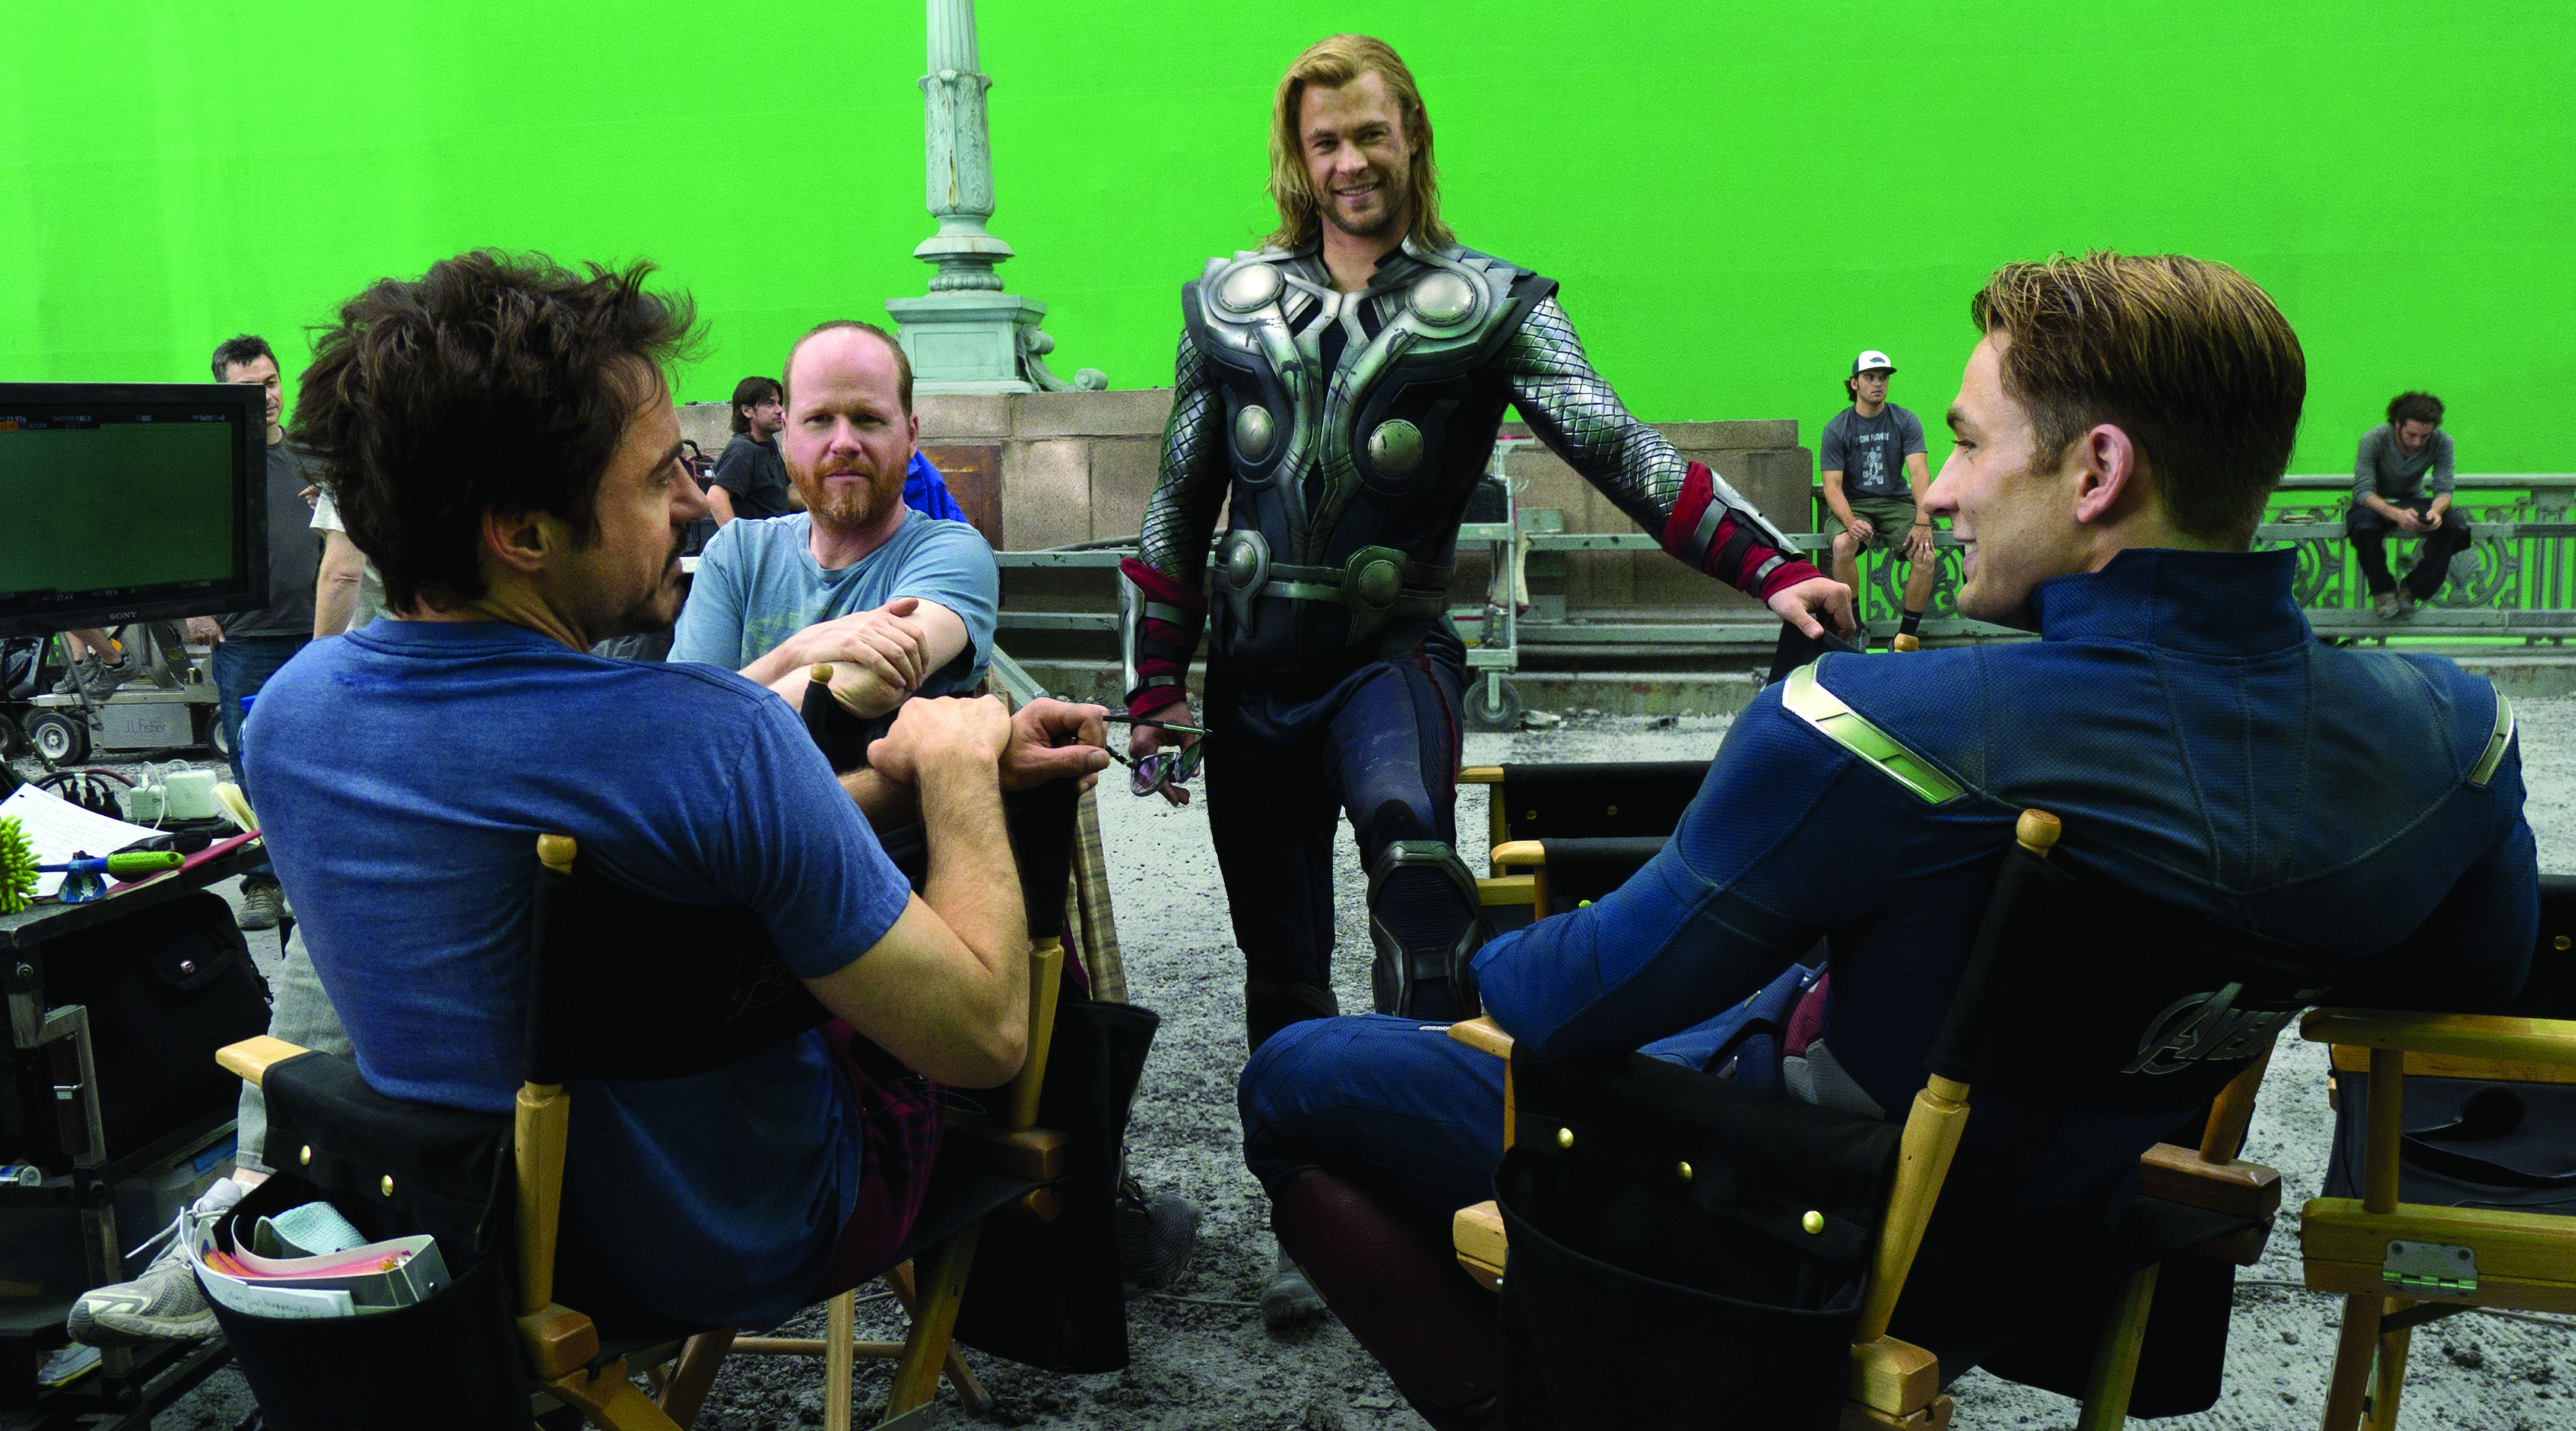 The Avengers cast and crew behind the scenes, green screen a